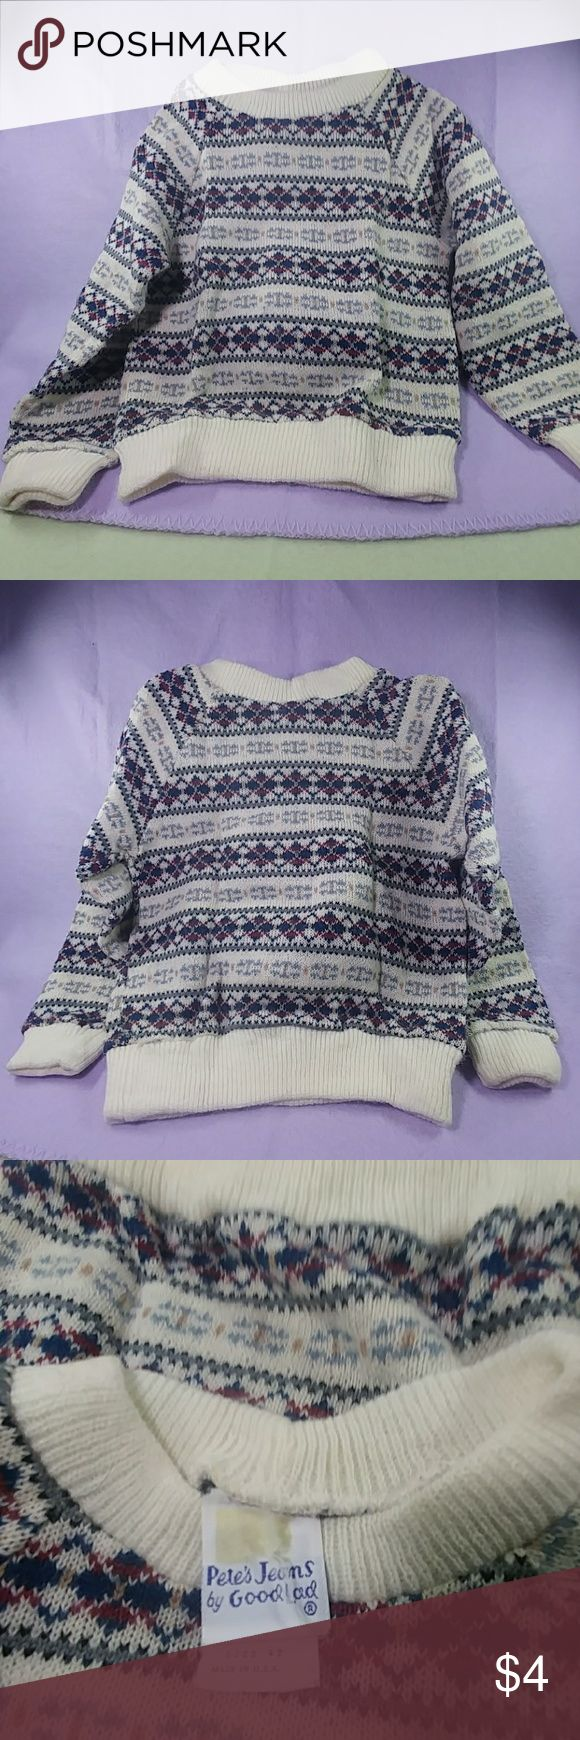 Boys Argyle Sweater Boys argyle sweater. 4t. No observed holes or stains. Shirts & Tops Sweaters